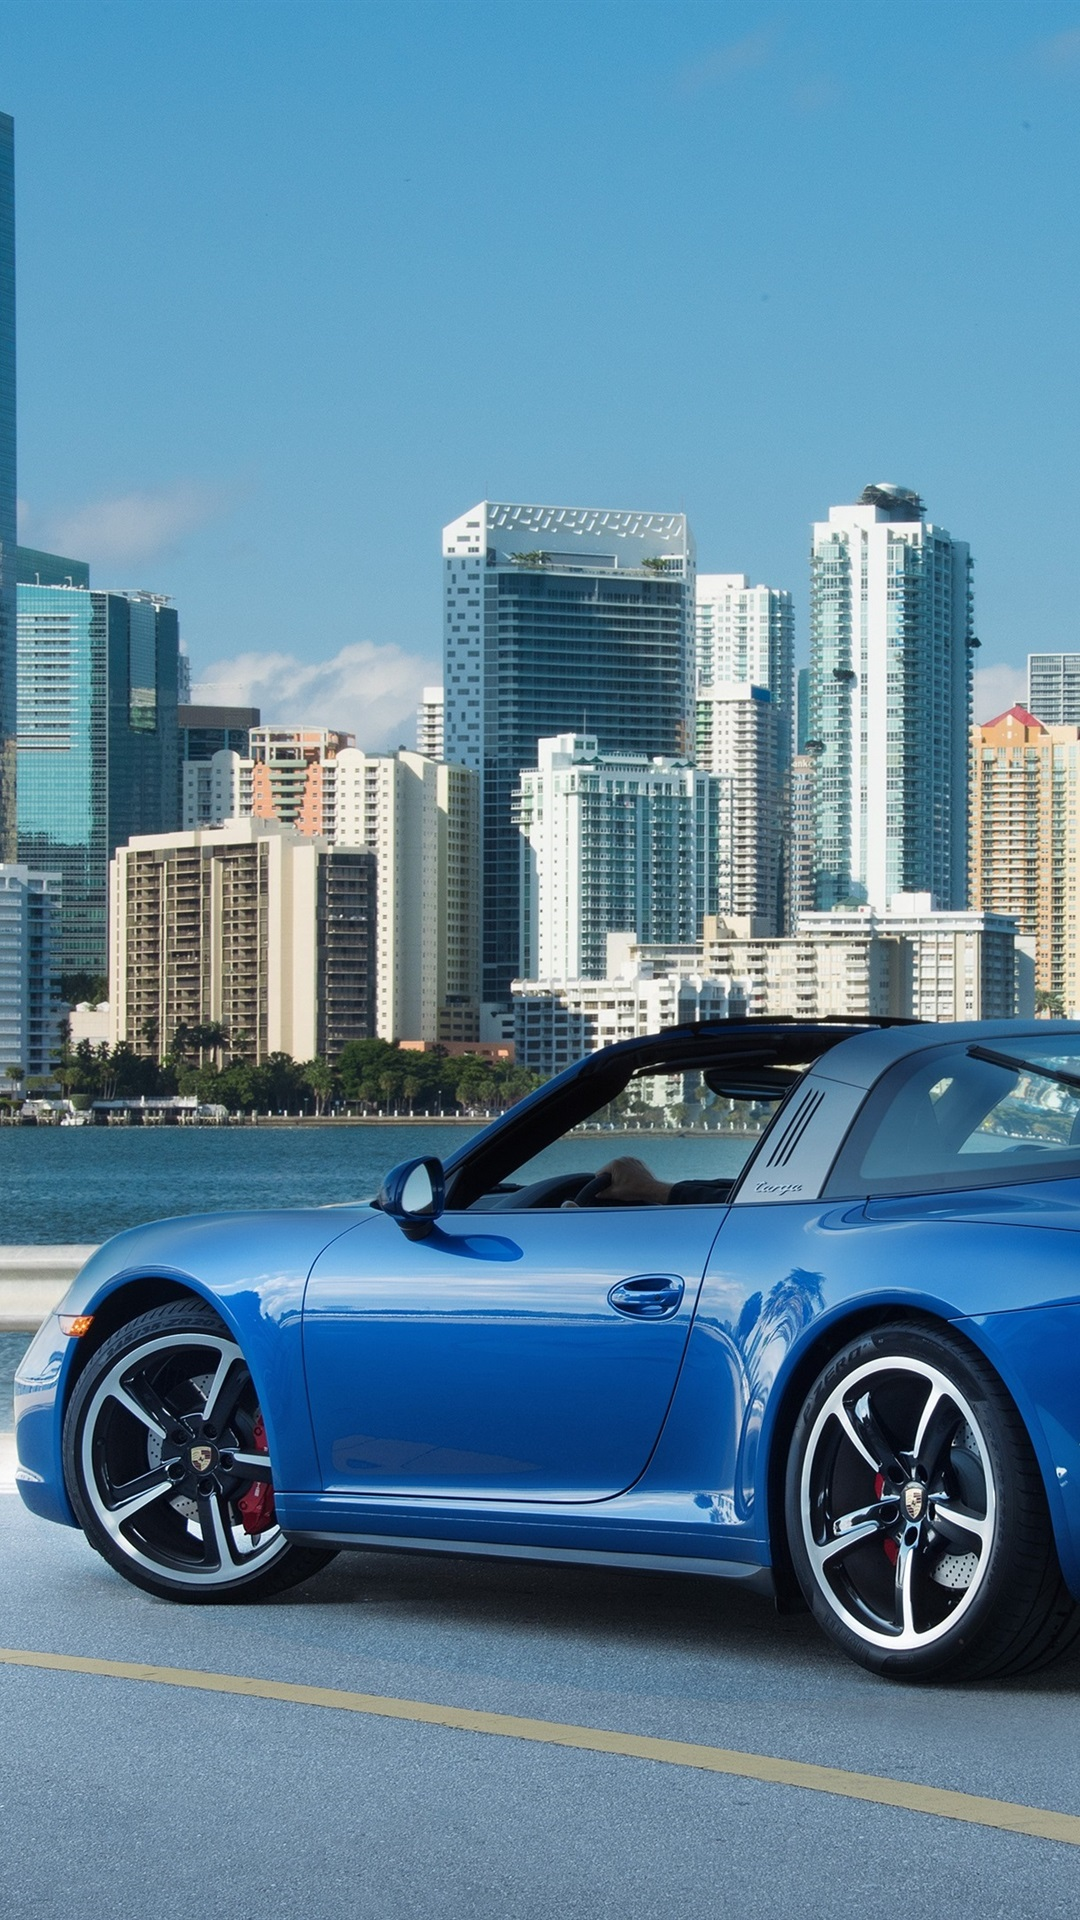 Porsche 911 Targa 4s Blue Supercar At City 1080x1920 Iphone